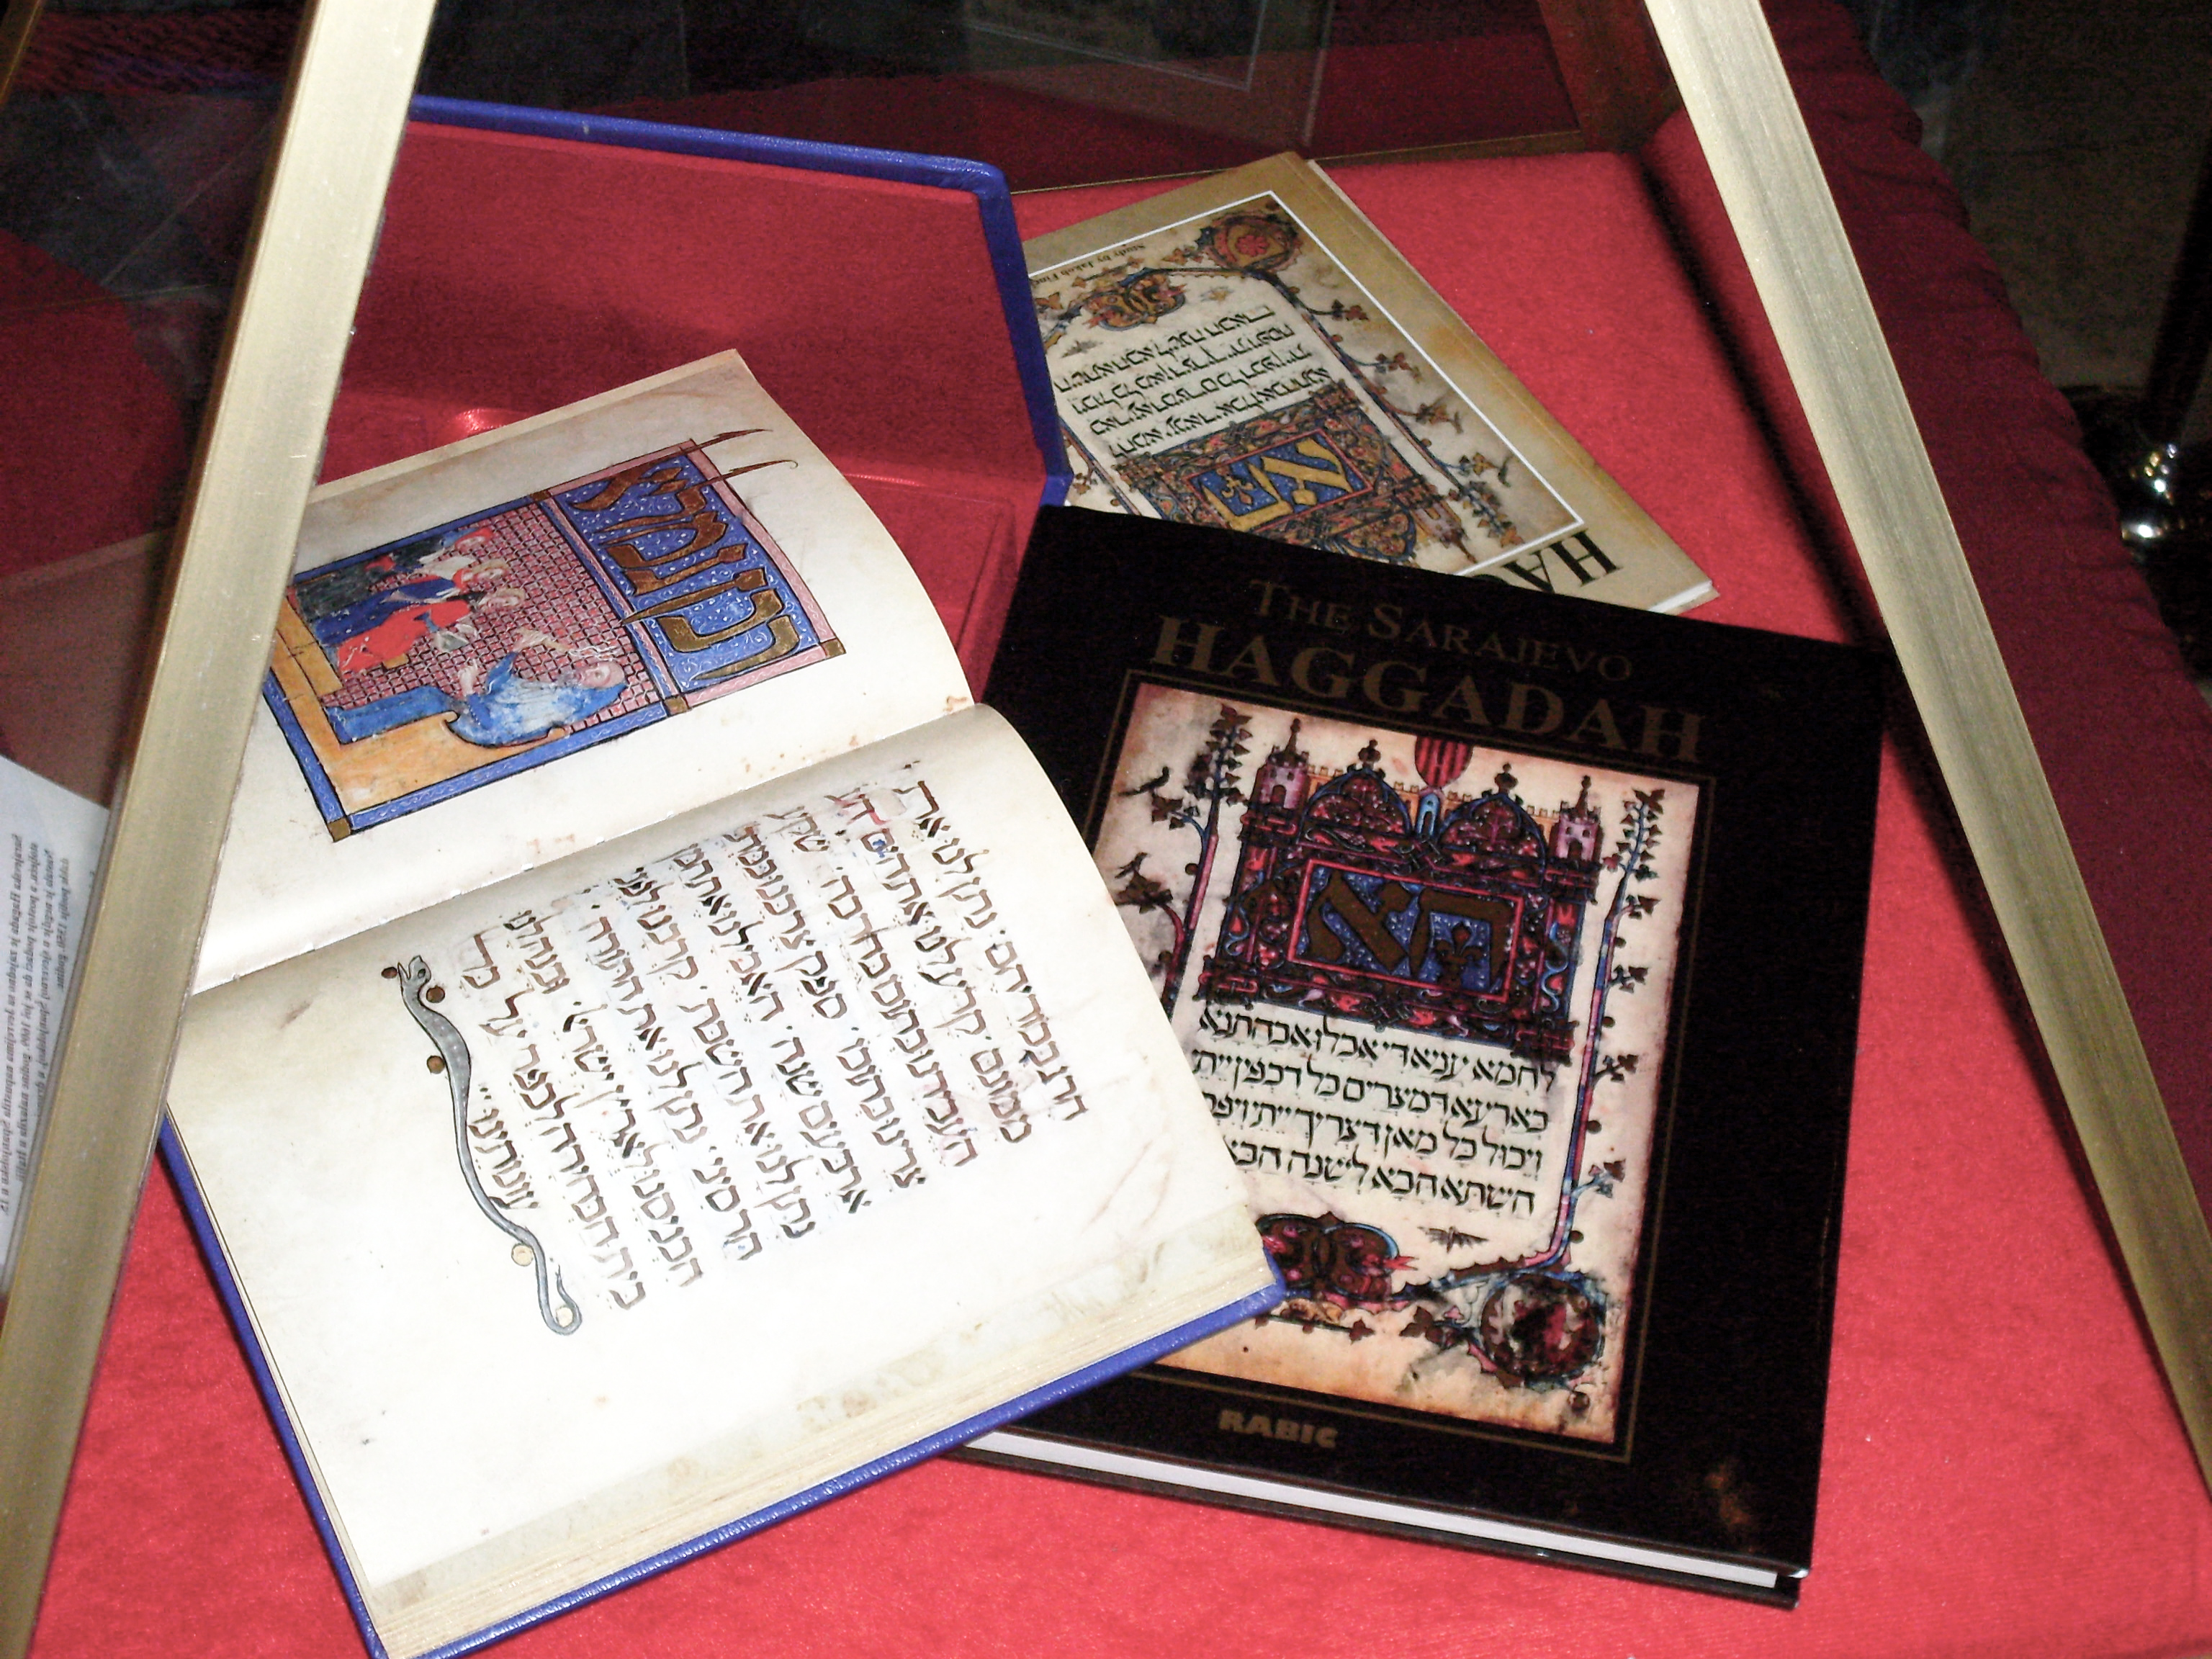 photo relating to Printable Haggadah identified as Sarajevo Haggadah - Wikipedia